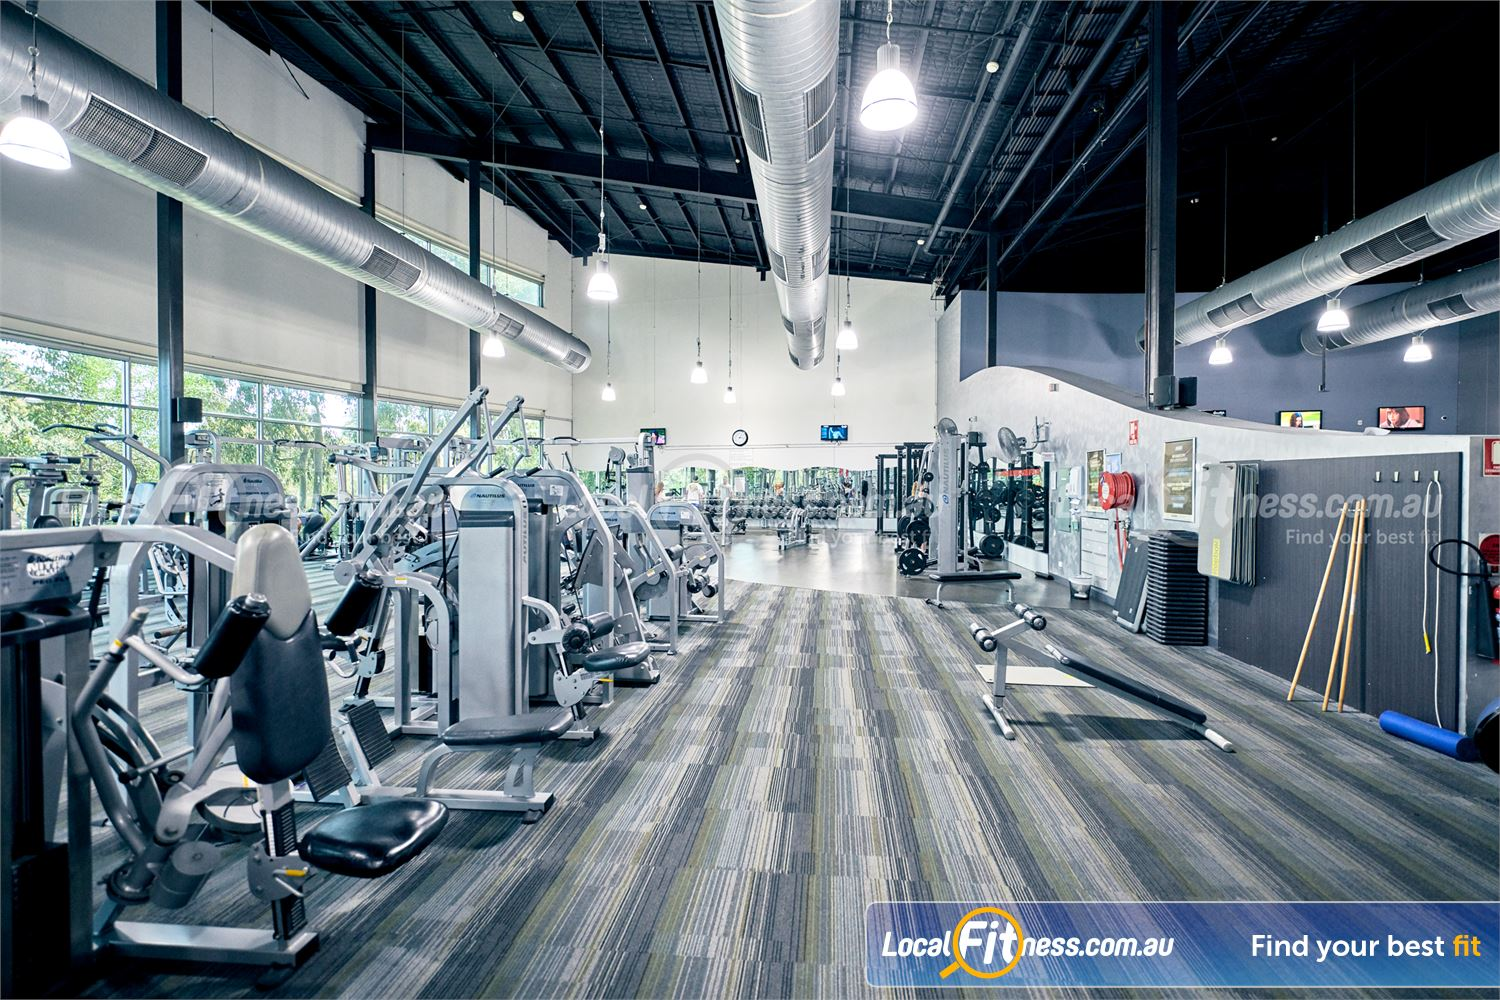 A little friendly competition can go a long way. Only available at select 24 Hour Fitness gyms like Pflugerville, our signature group training program - Training Club 24 - is designed to help you transform your fitness through challenging team workouts that build in intensity each week.